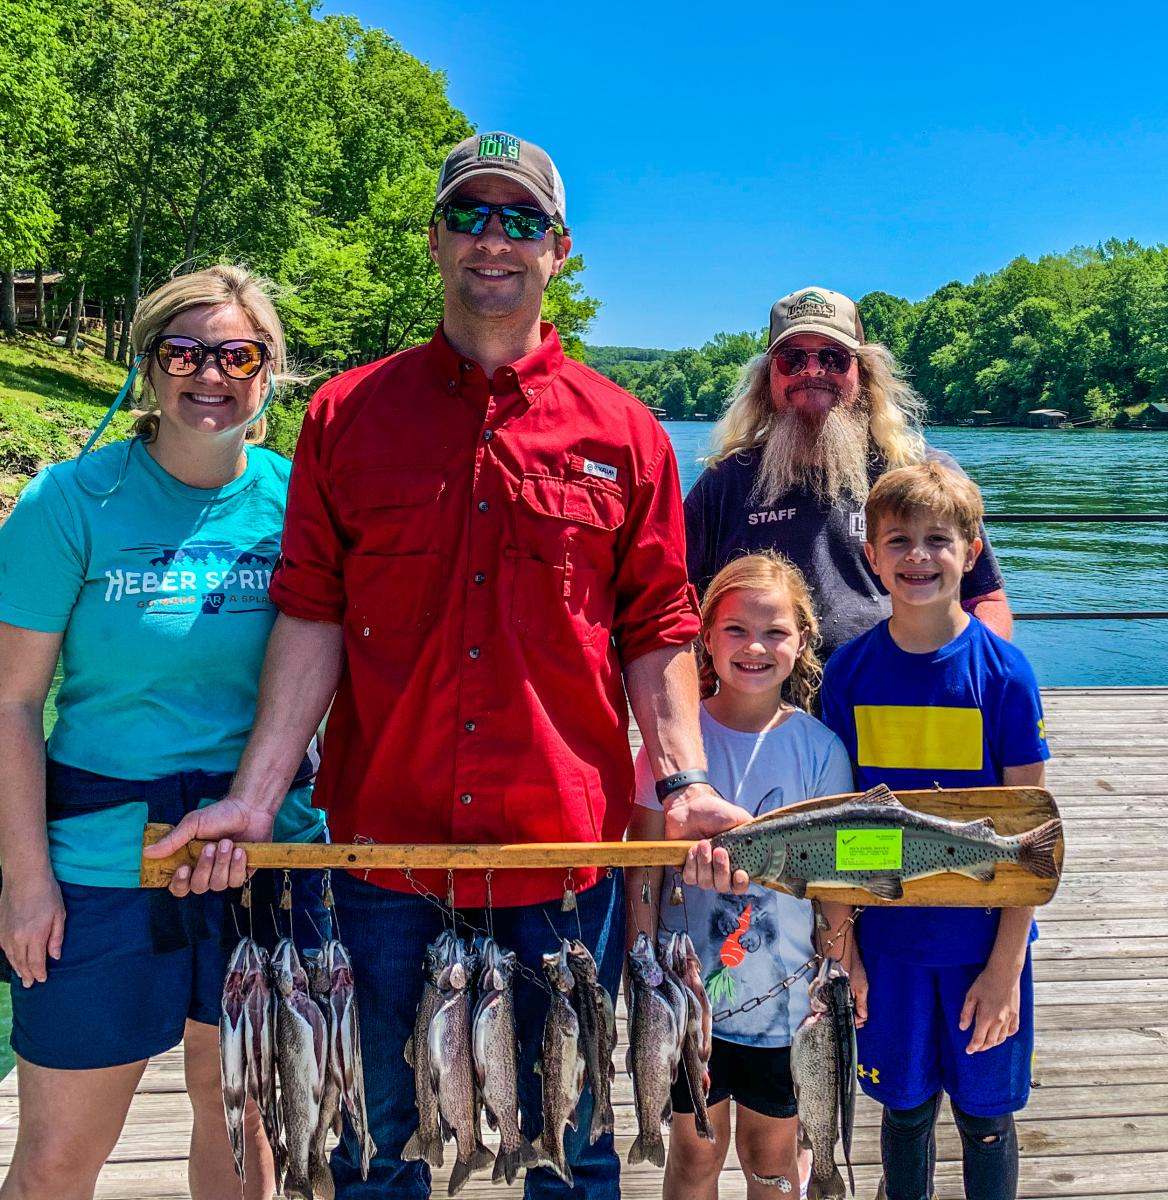 Family Fishing trip on the Little Red River